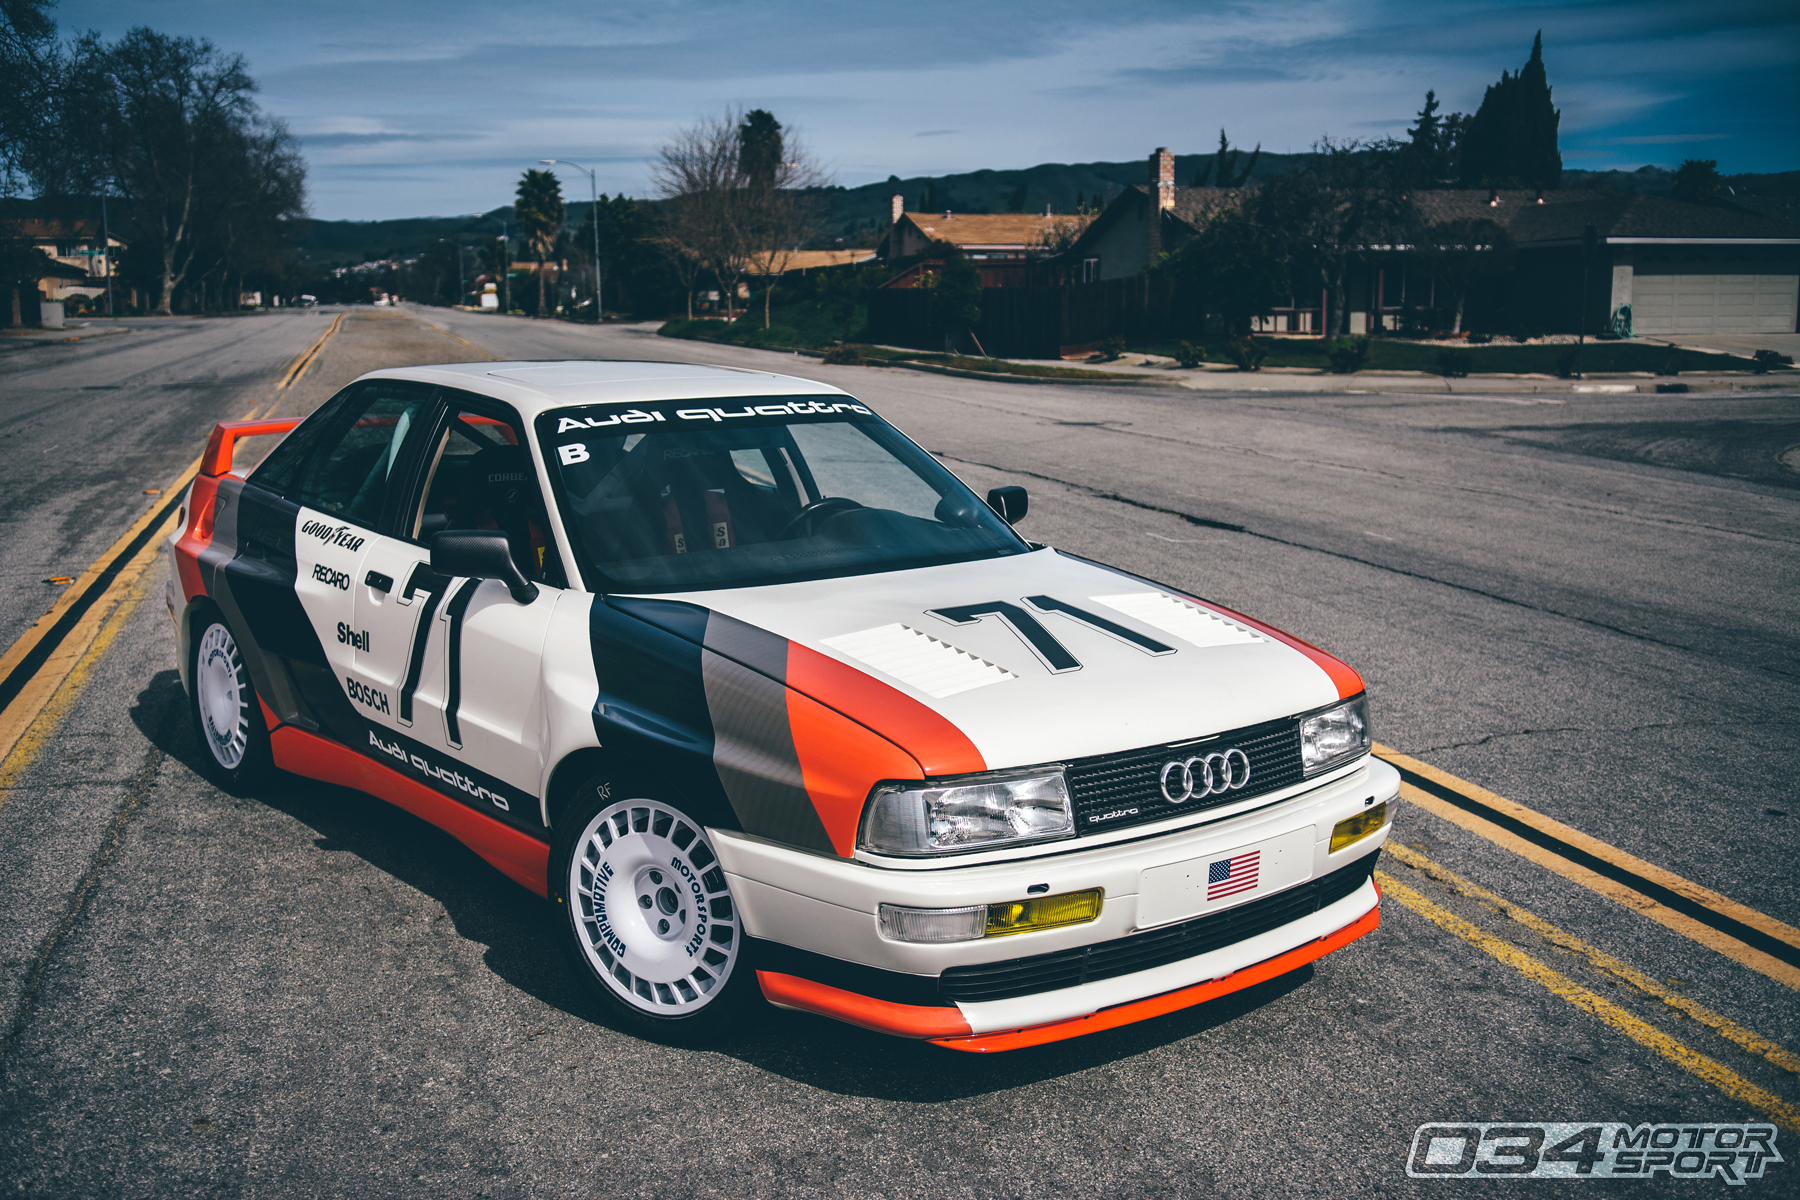 Widebody 1991 Audi 90 20V Quattro Turbo